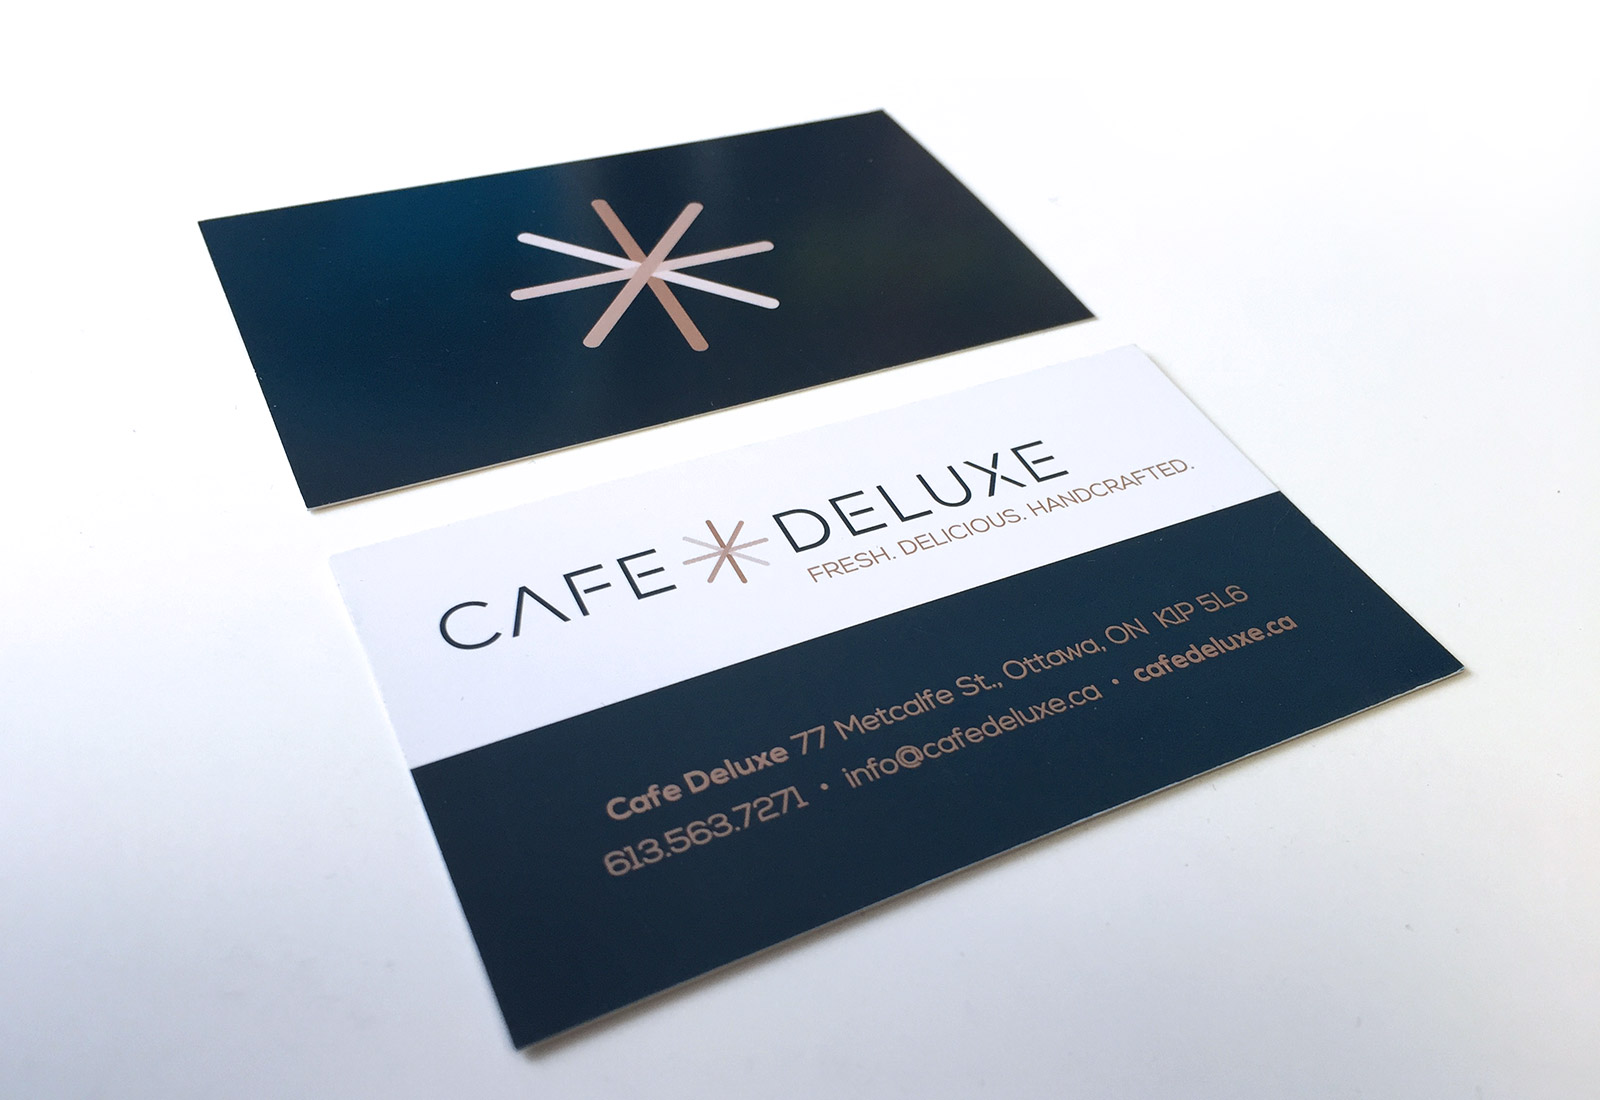 Same day business cards leeds gallery card design and card template plastic business cards leeds image collections card design and business cards leeds gallery card design and reheart Choice Image